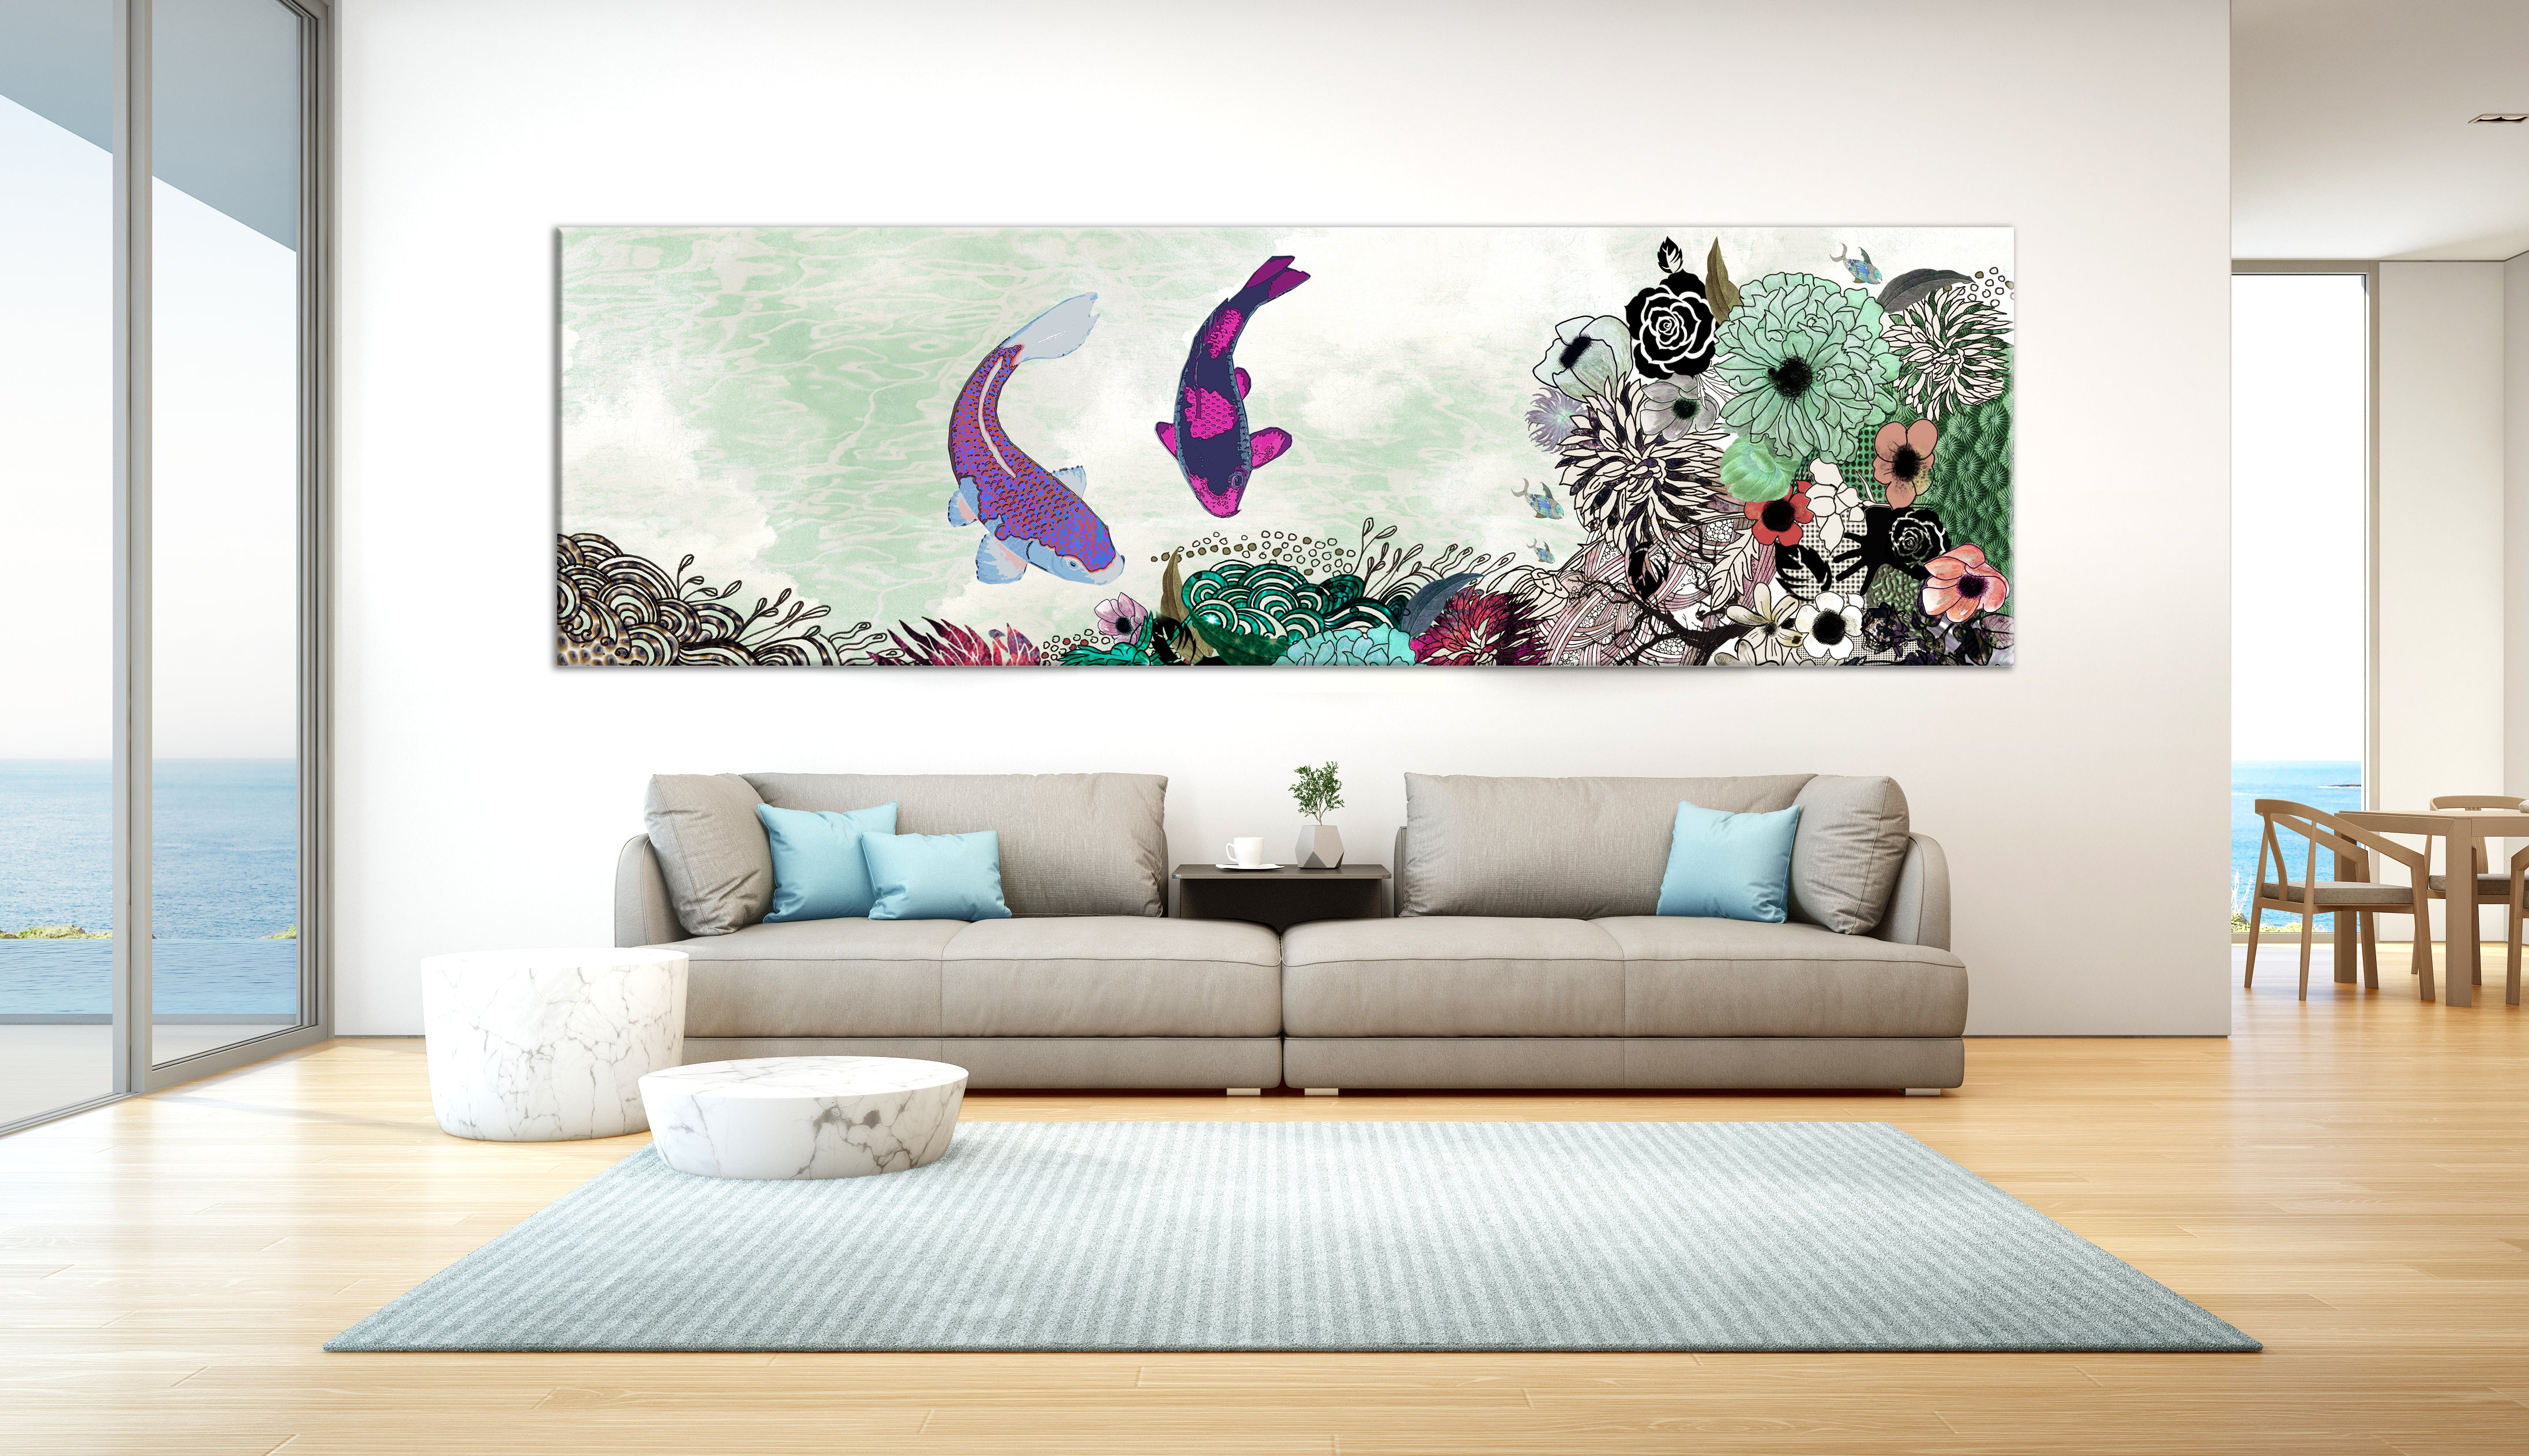 A koi fish painting with colors of green and purple, above a large gray sofa